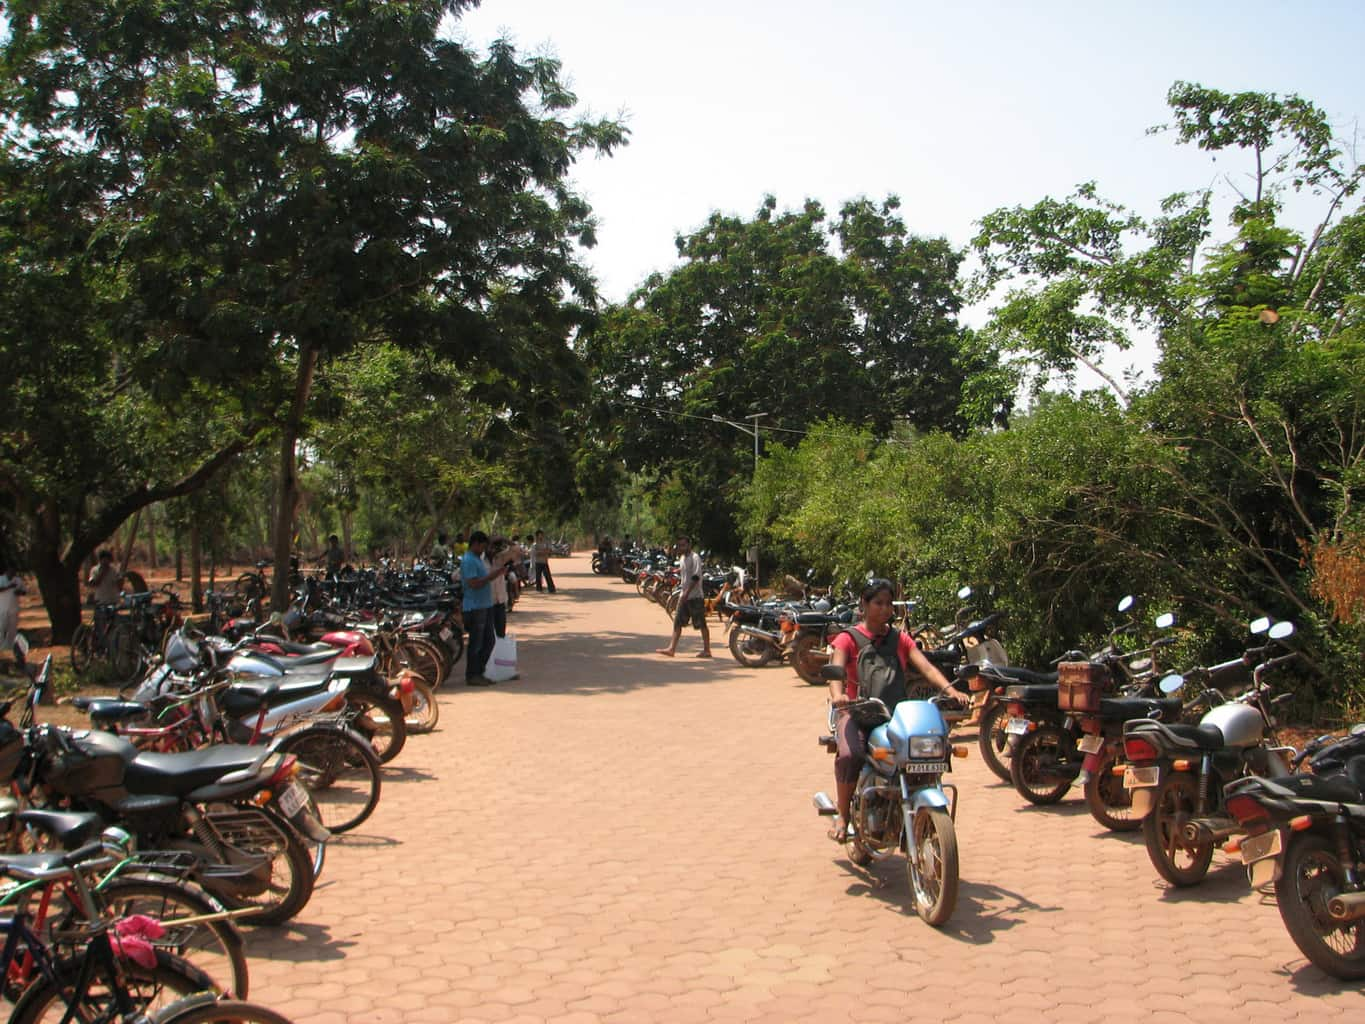 two wheeler in india essay Free essay on two wheeler market in india available totally free at echeatcom, the largest free essay community.